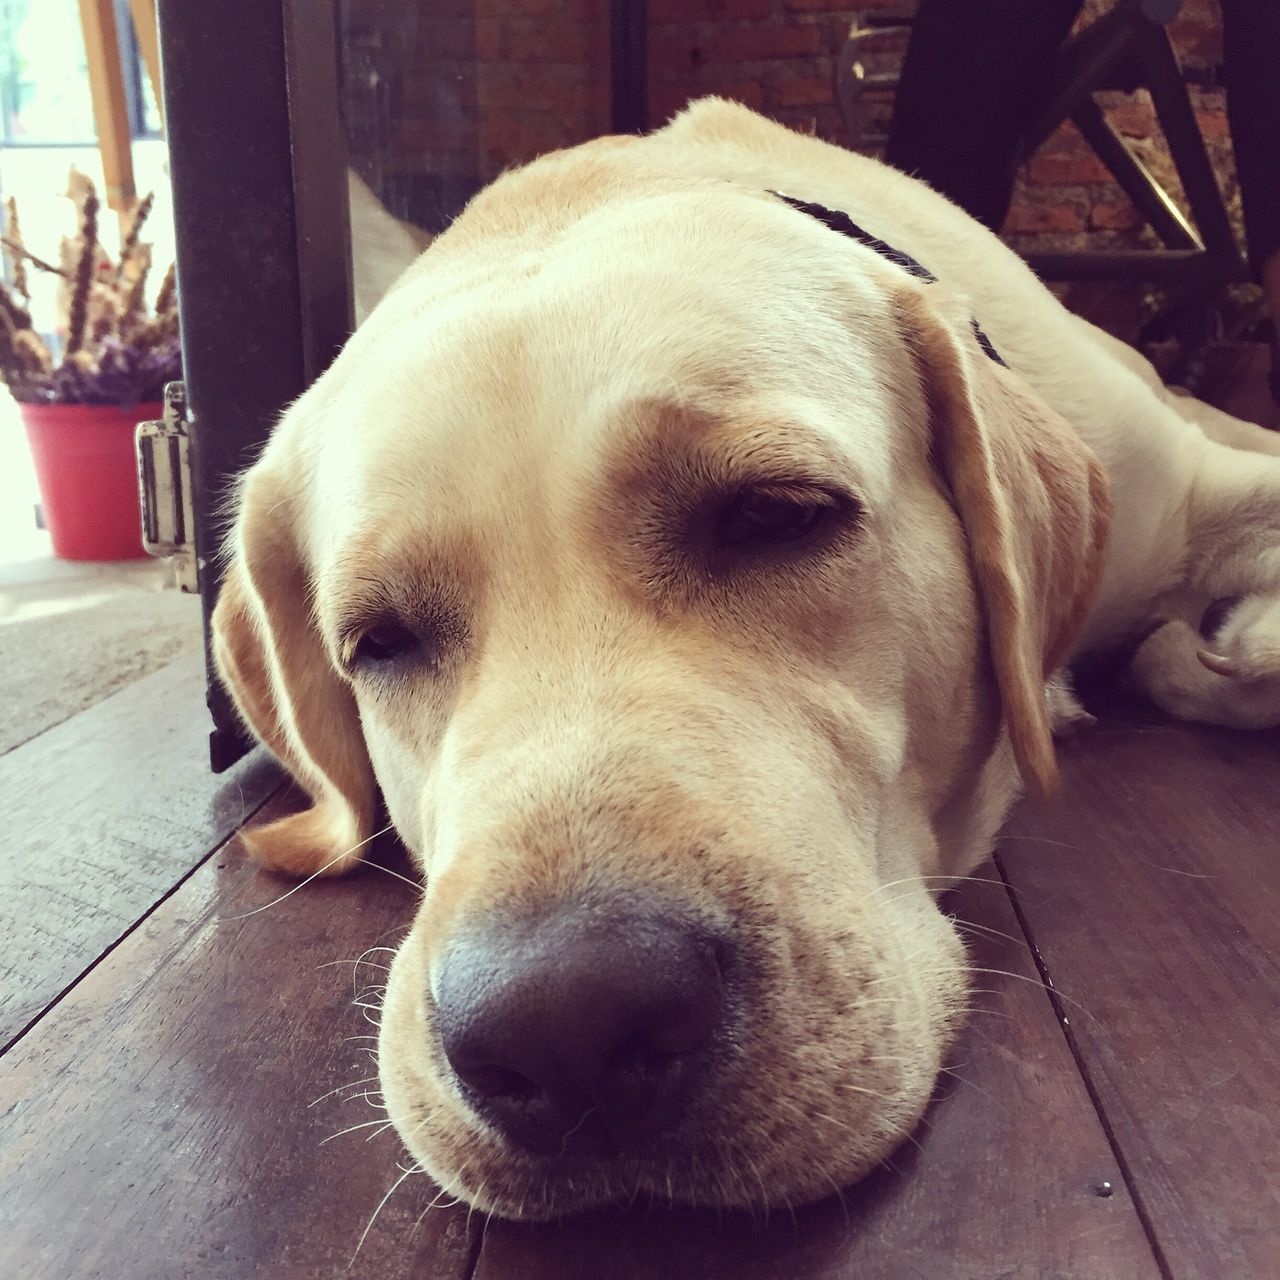 Afternoon naps Labrador Dogs Rest Sleepy Vip Receptionist Tired! Cute Pets